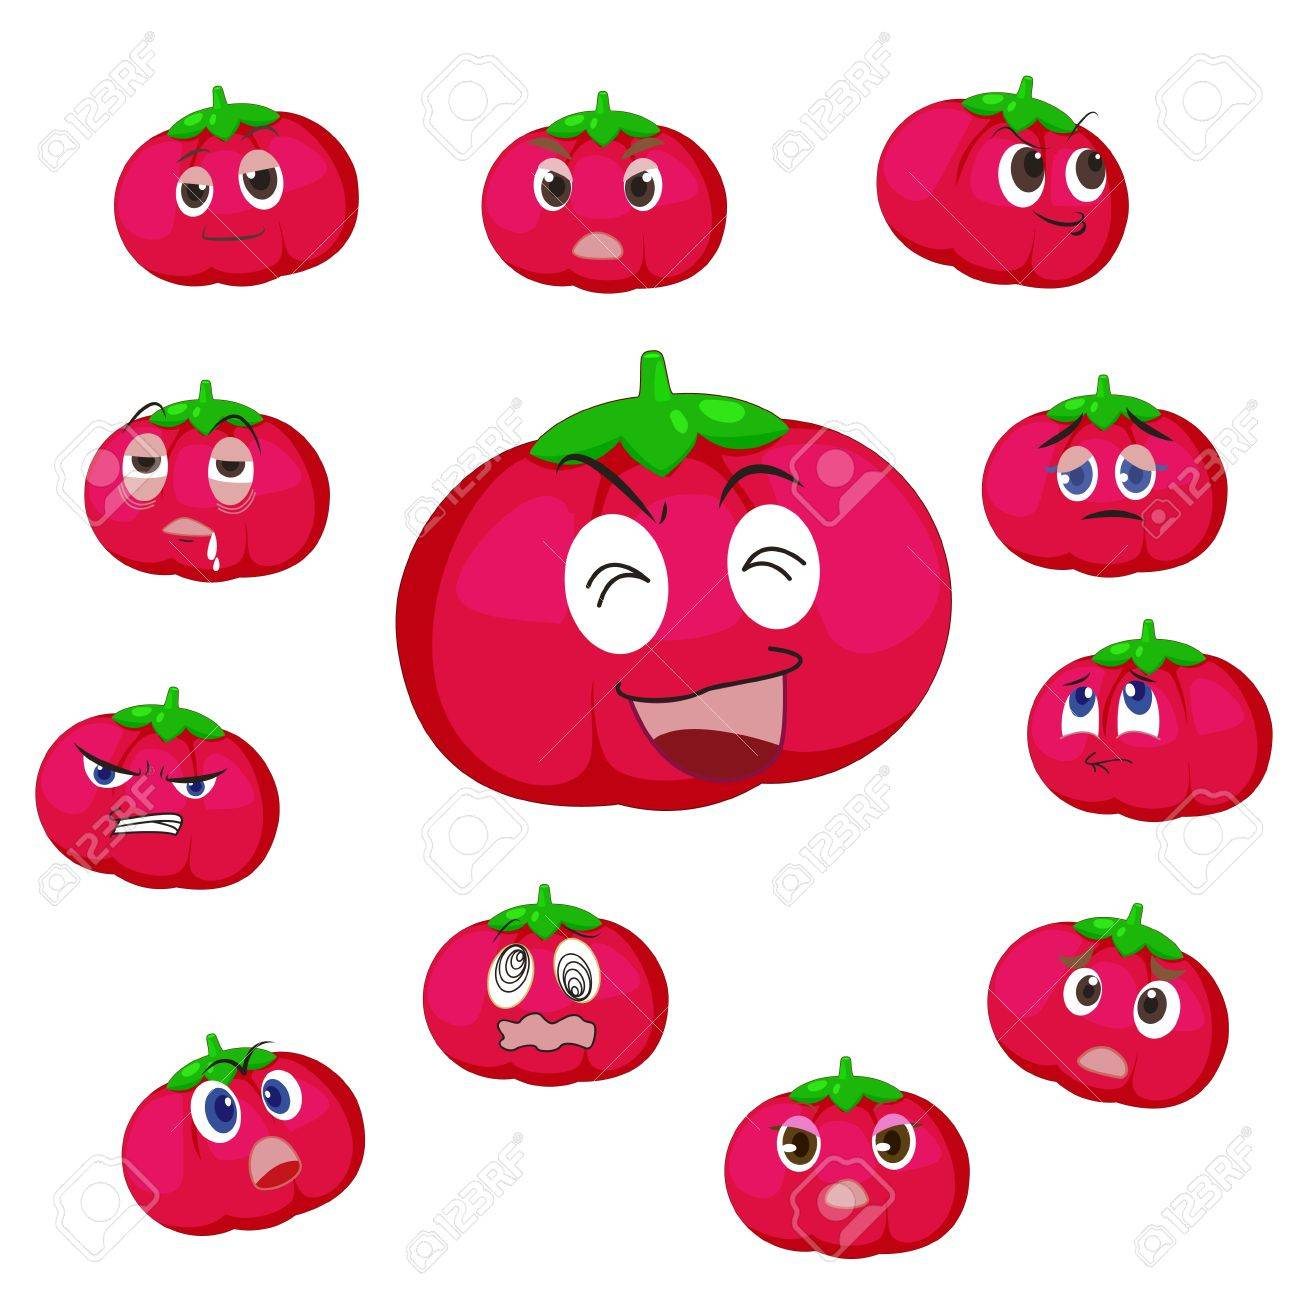 tomato cartoon with many expressions isolated on white background Stock Vector - 17274562